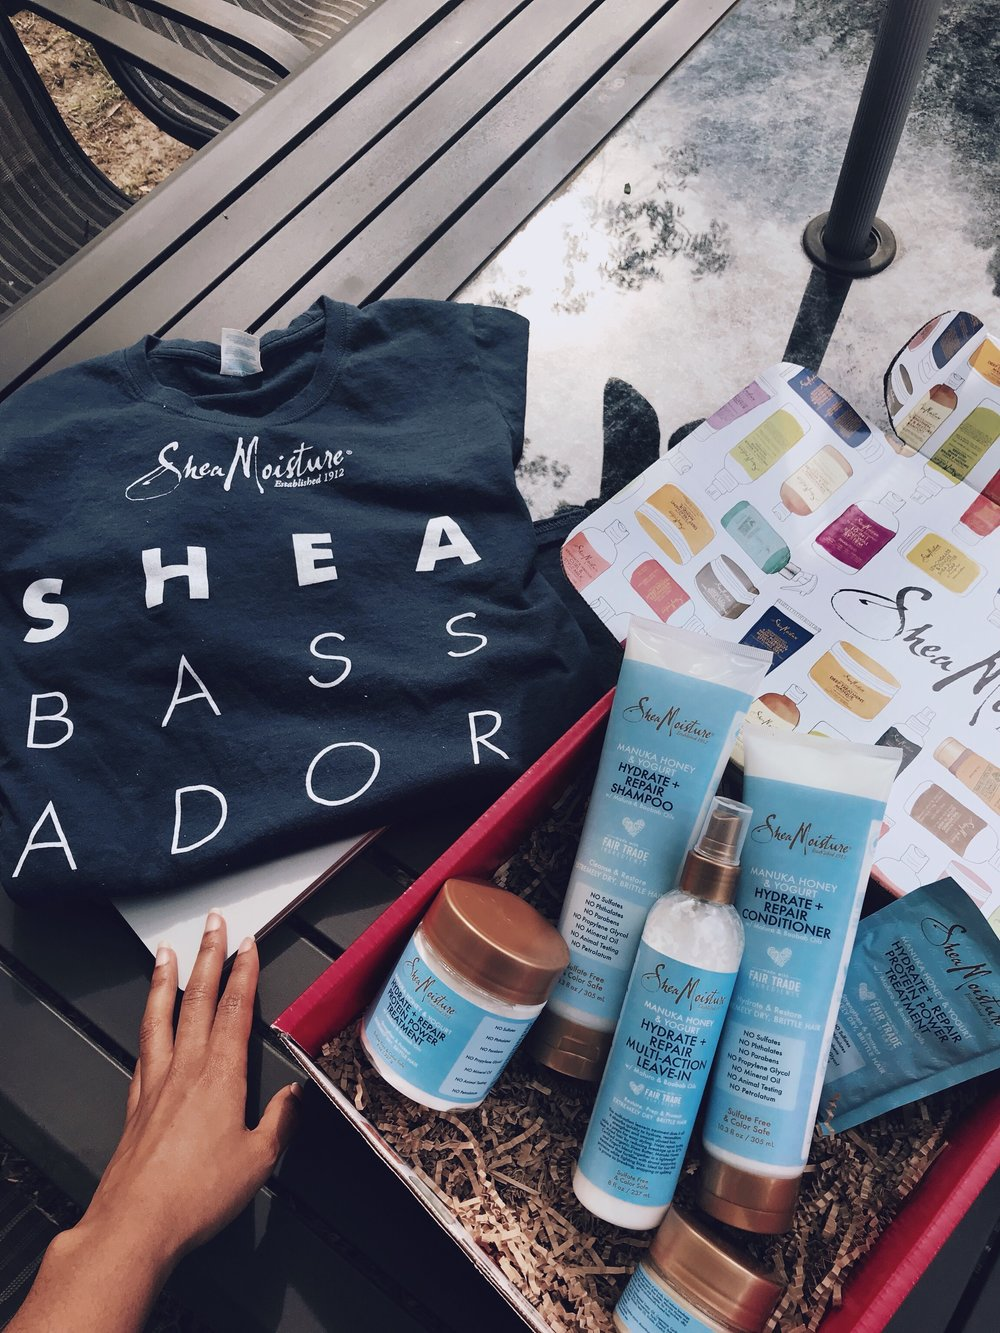 Guess What?!  - I am proud to announce that I am a Shea Moisture ambassador for 2018!!!!!! This blog has brought me many opportunities, and I never would have thought I would be working with one of my favorite brands. I will be reviewing a Shea Moisture collection once a month- and letting you know all the details on the products! Thank You, #SheaFam.   Read my first review here!